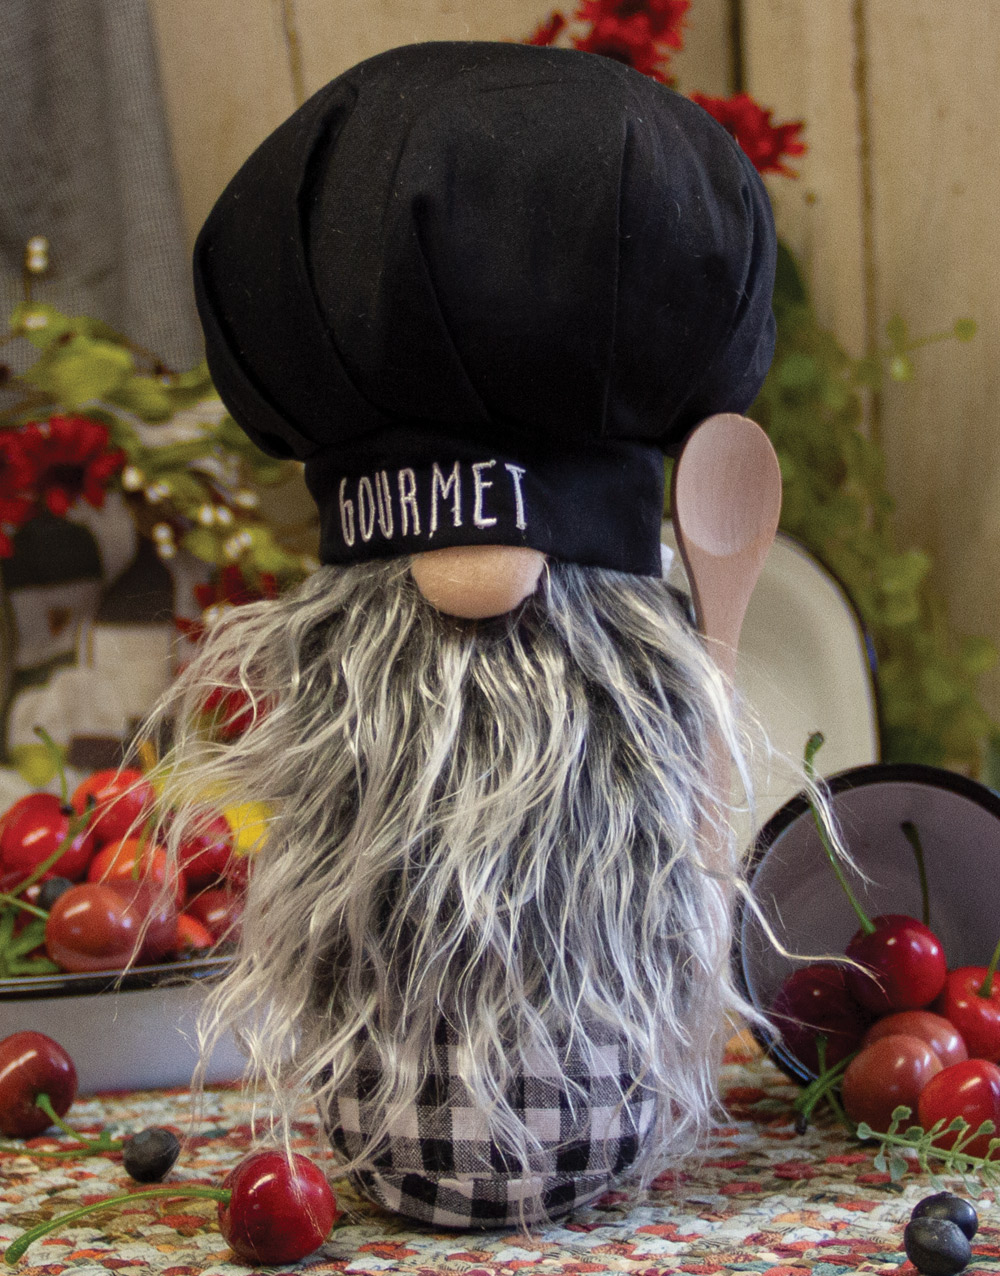 Chef Gnome – Gourmet, Black Hat